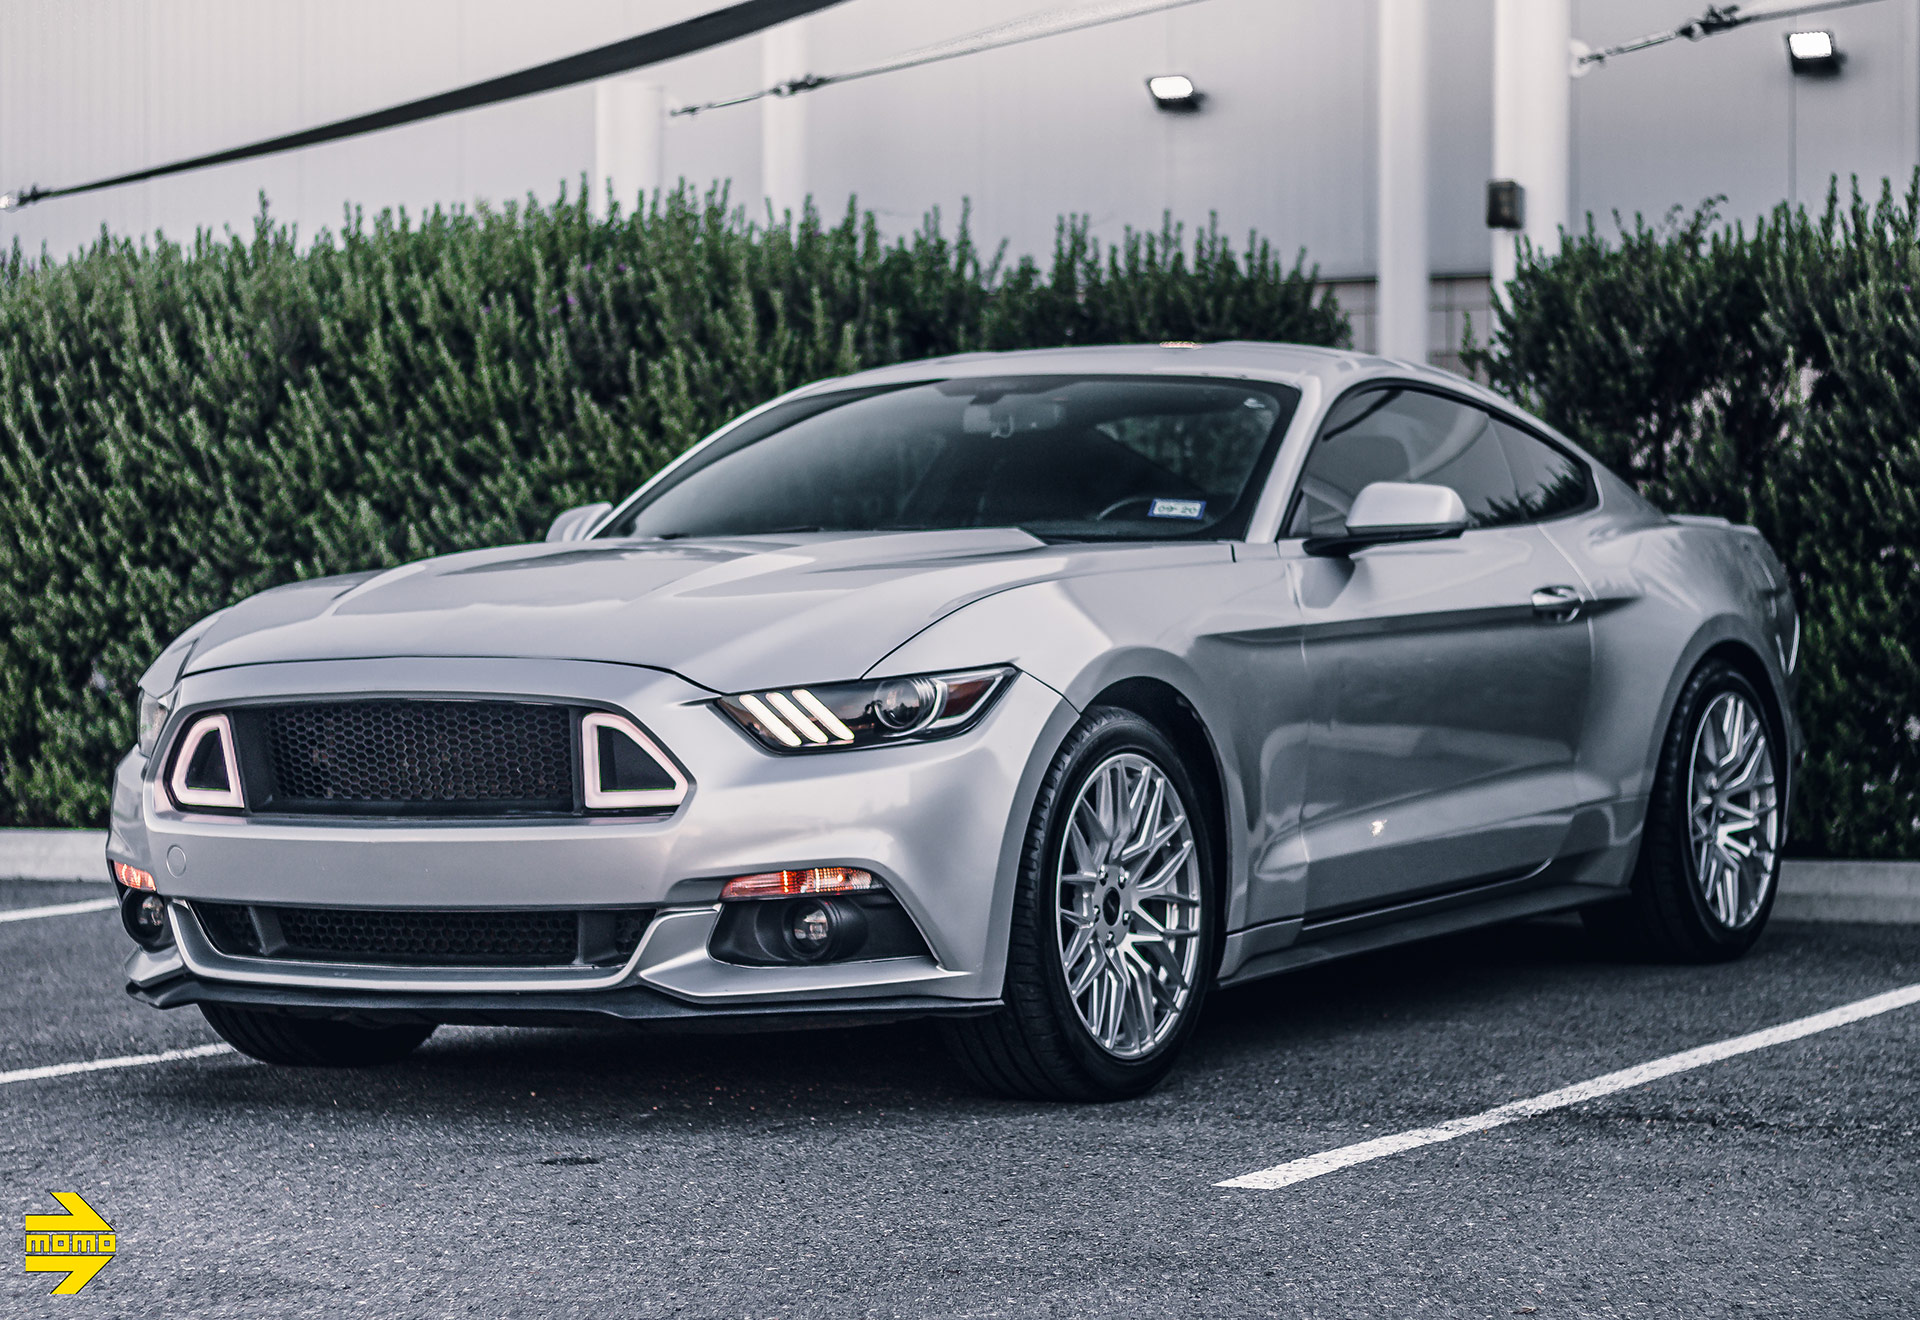 Iconic Silver Ford Mustang With MOMO Catania Wheels